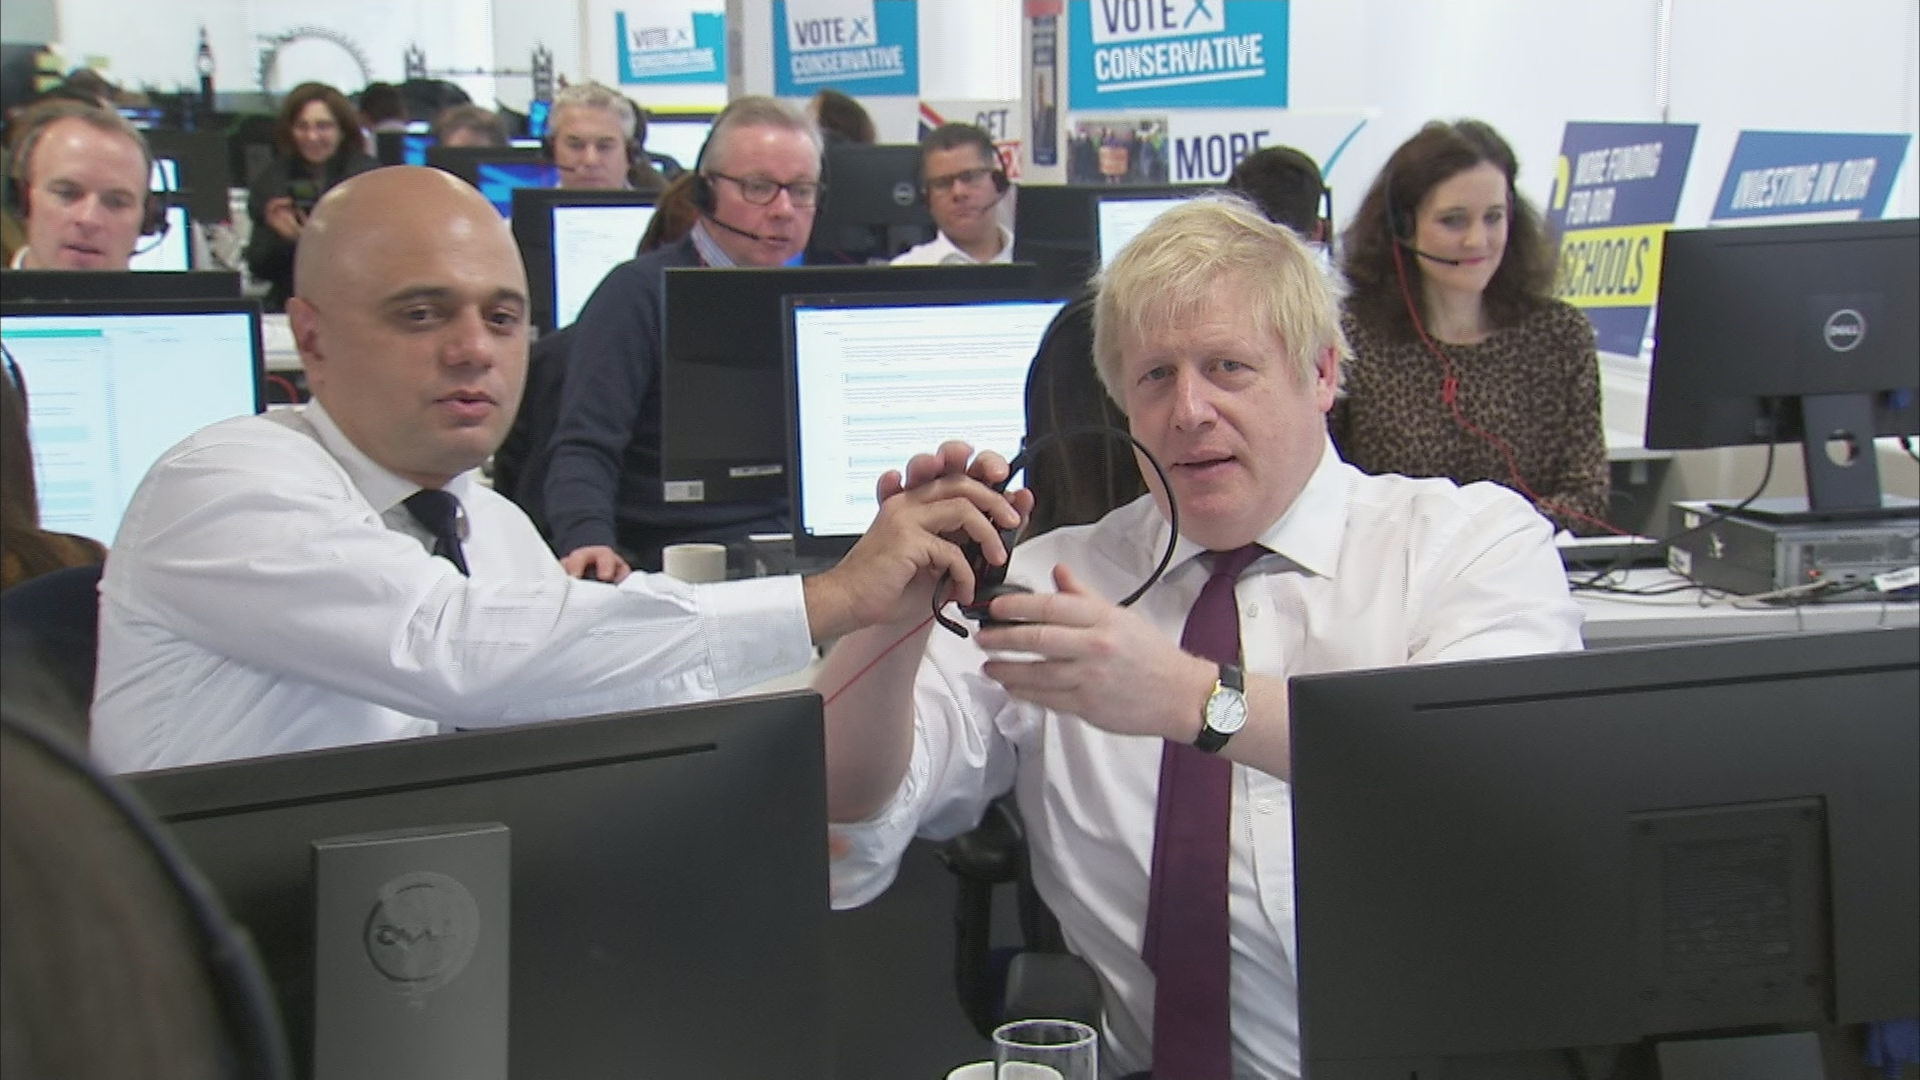 Boris Johnson Is Photographed In A Call Centre And Another Election Meme Is Born